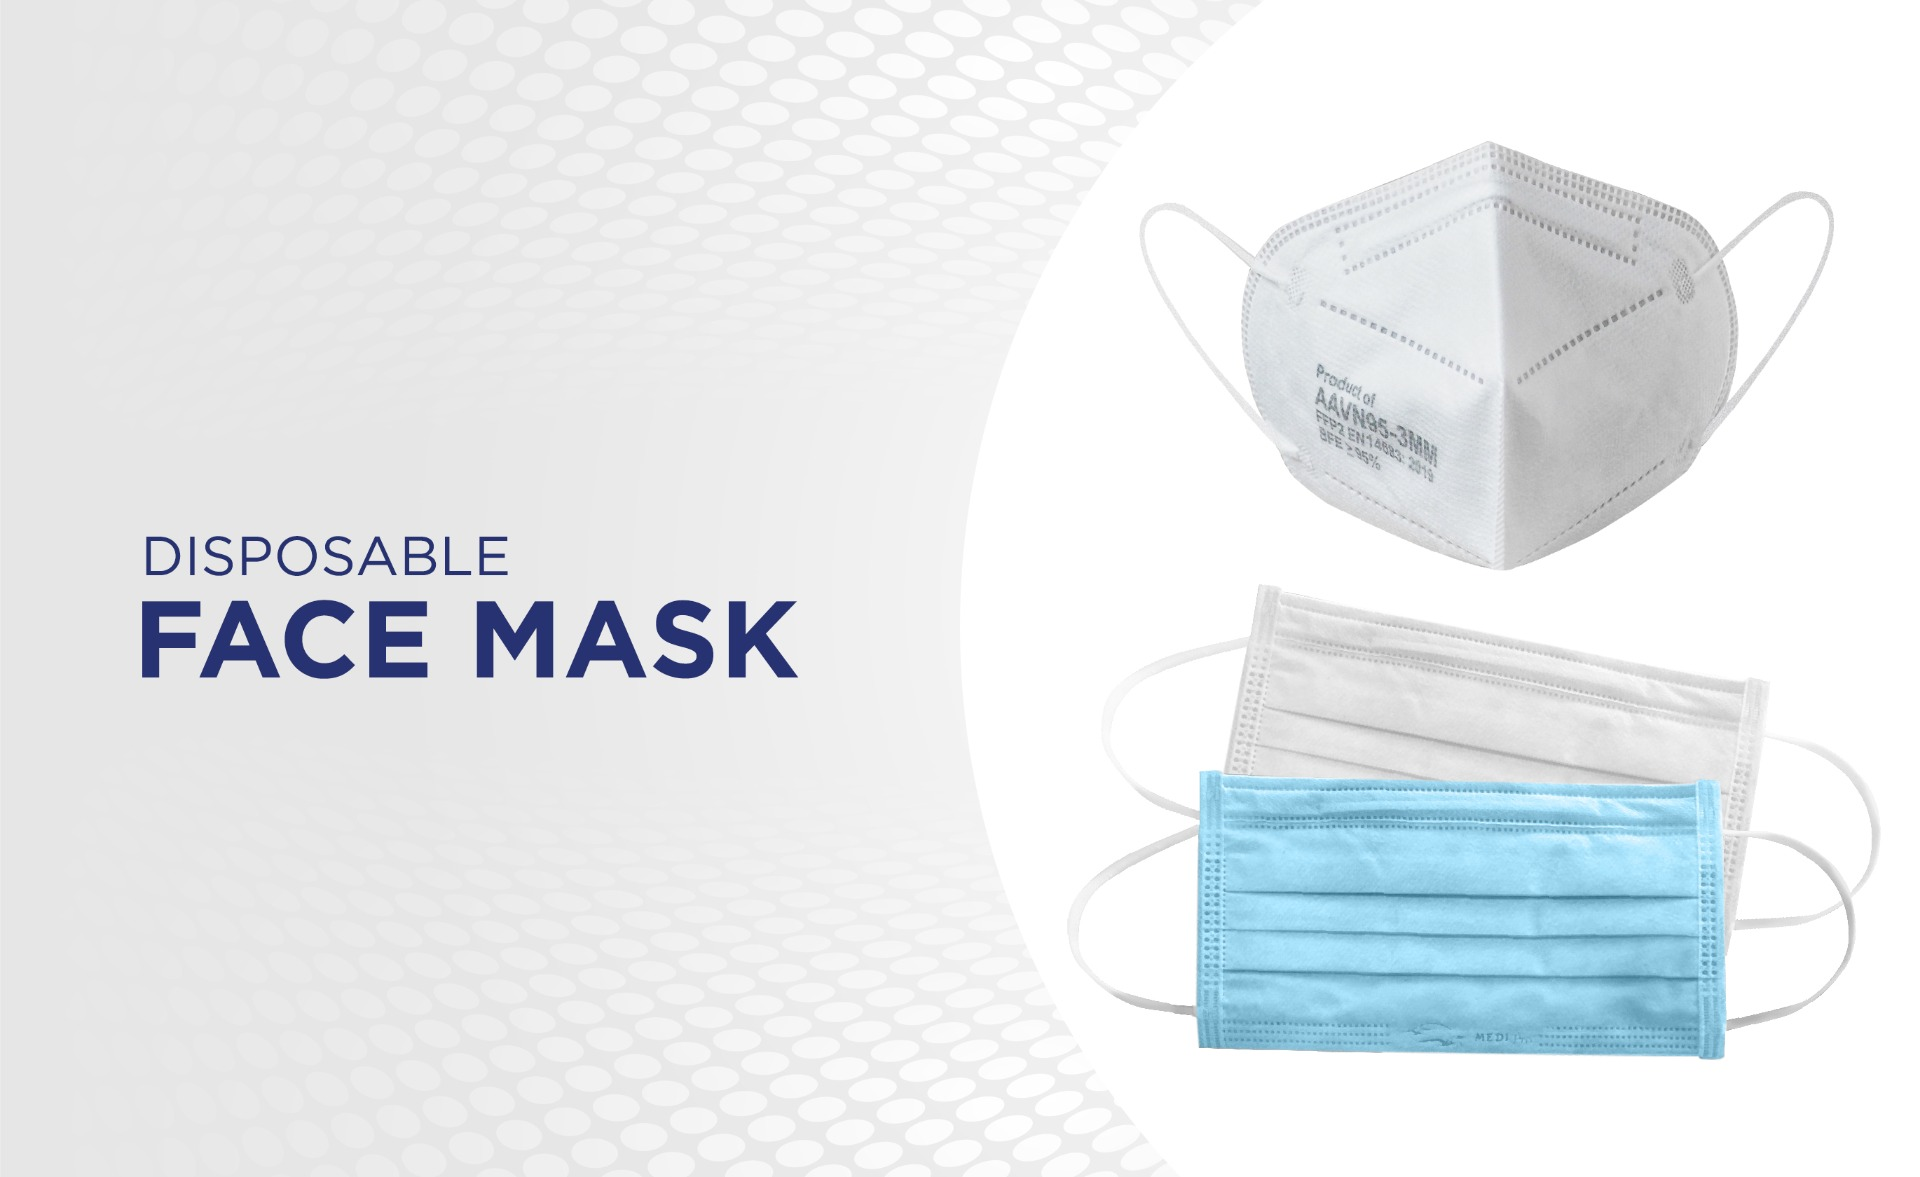 PPE surgical masks